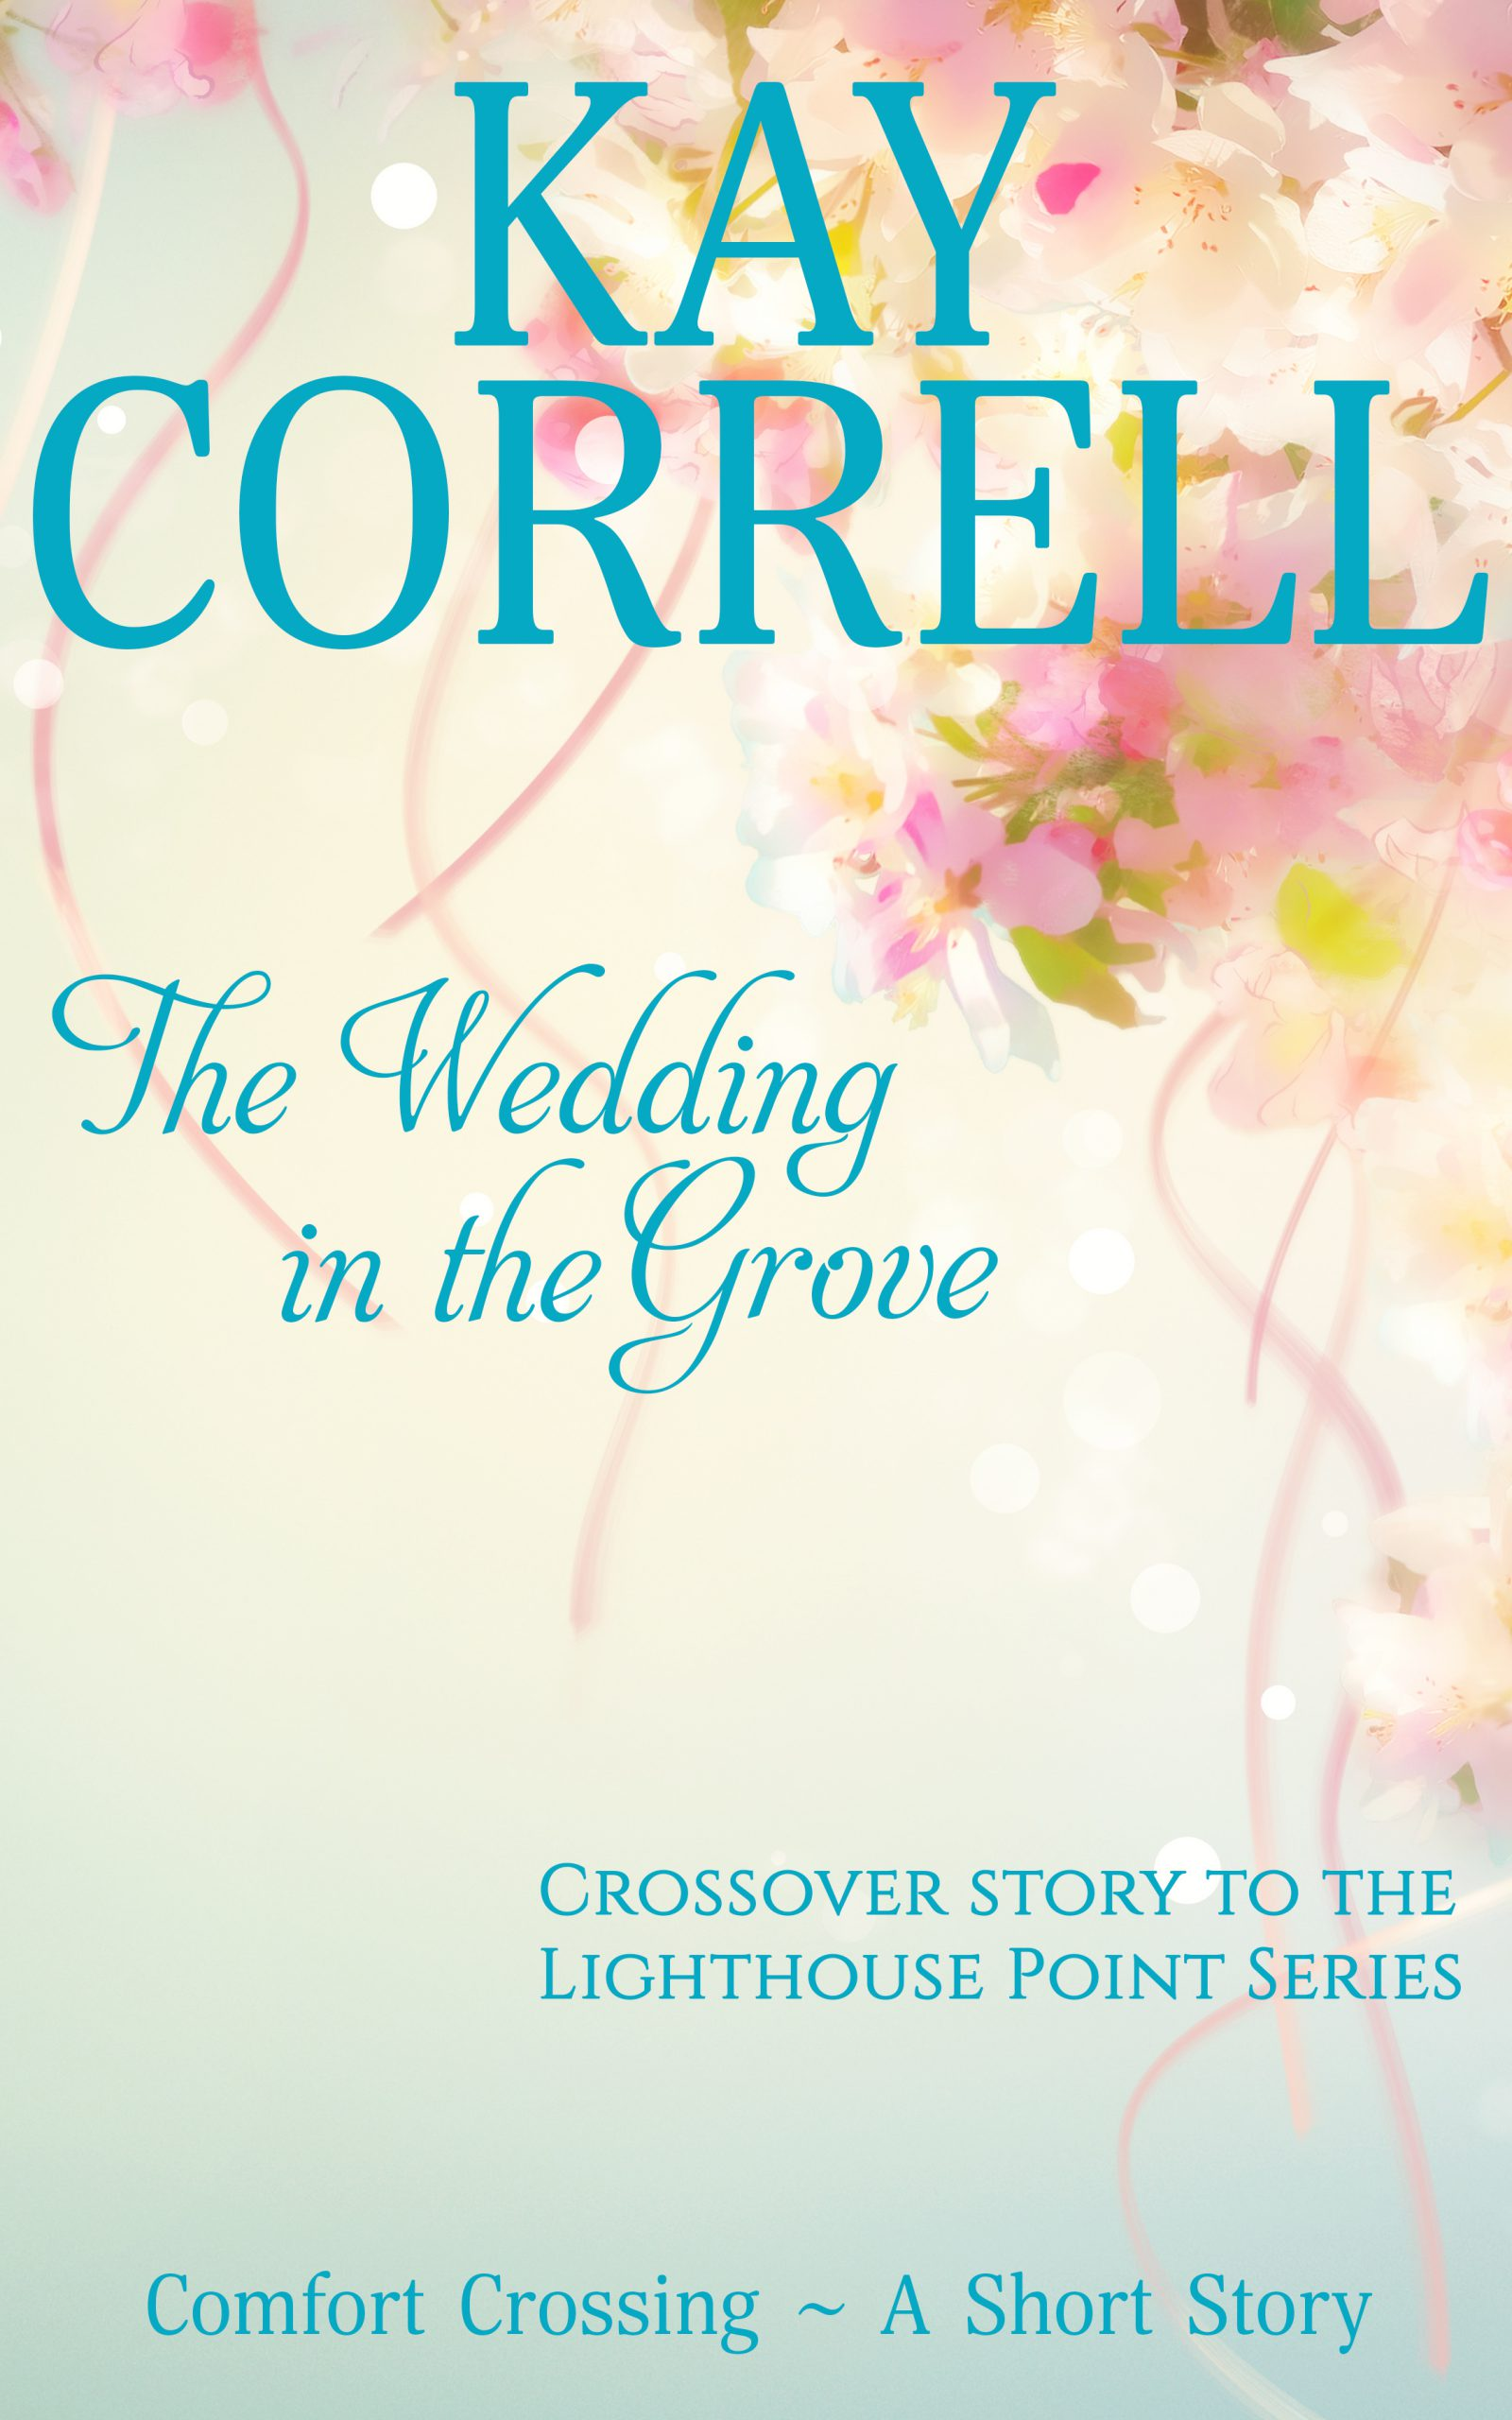 The Wedding in the Grove a short story cross-over between Comfort Crossing and Lighthouse Point